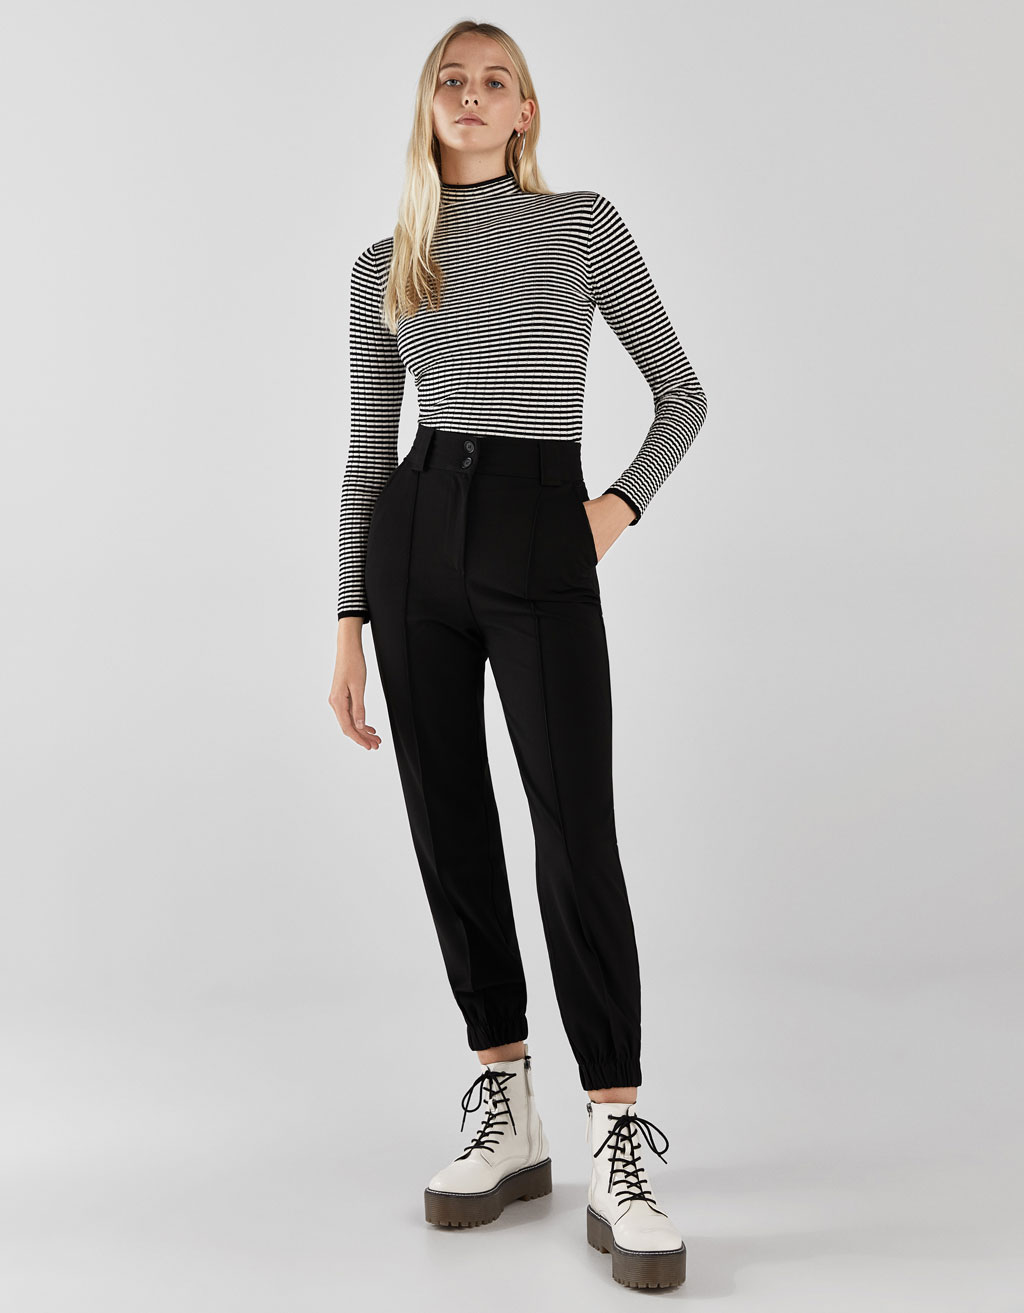 Jogging trousers with an elastic waistband